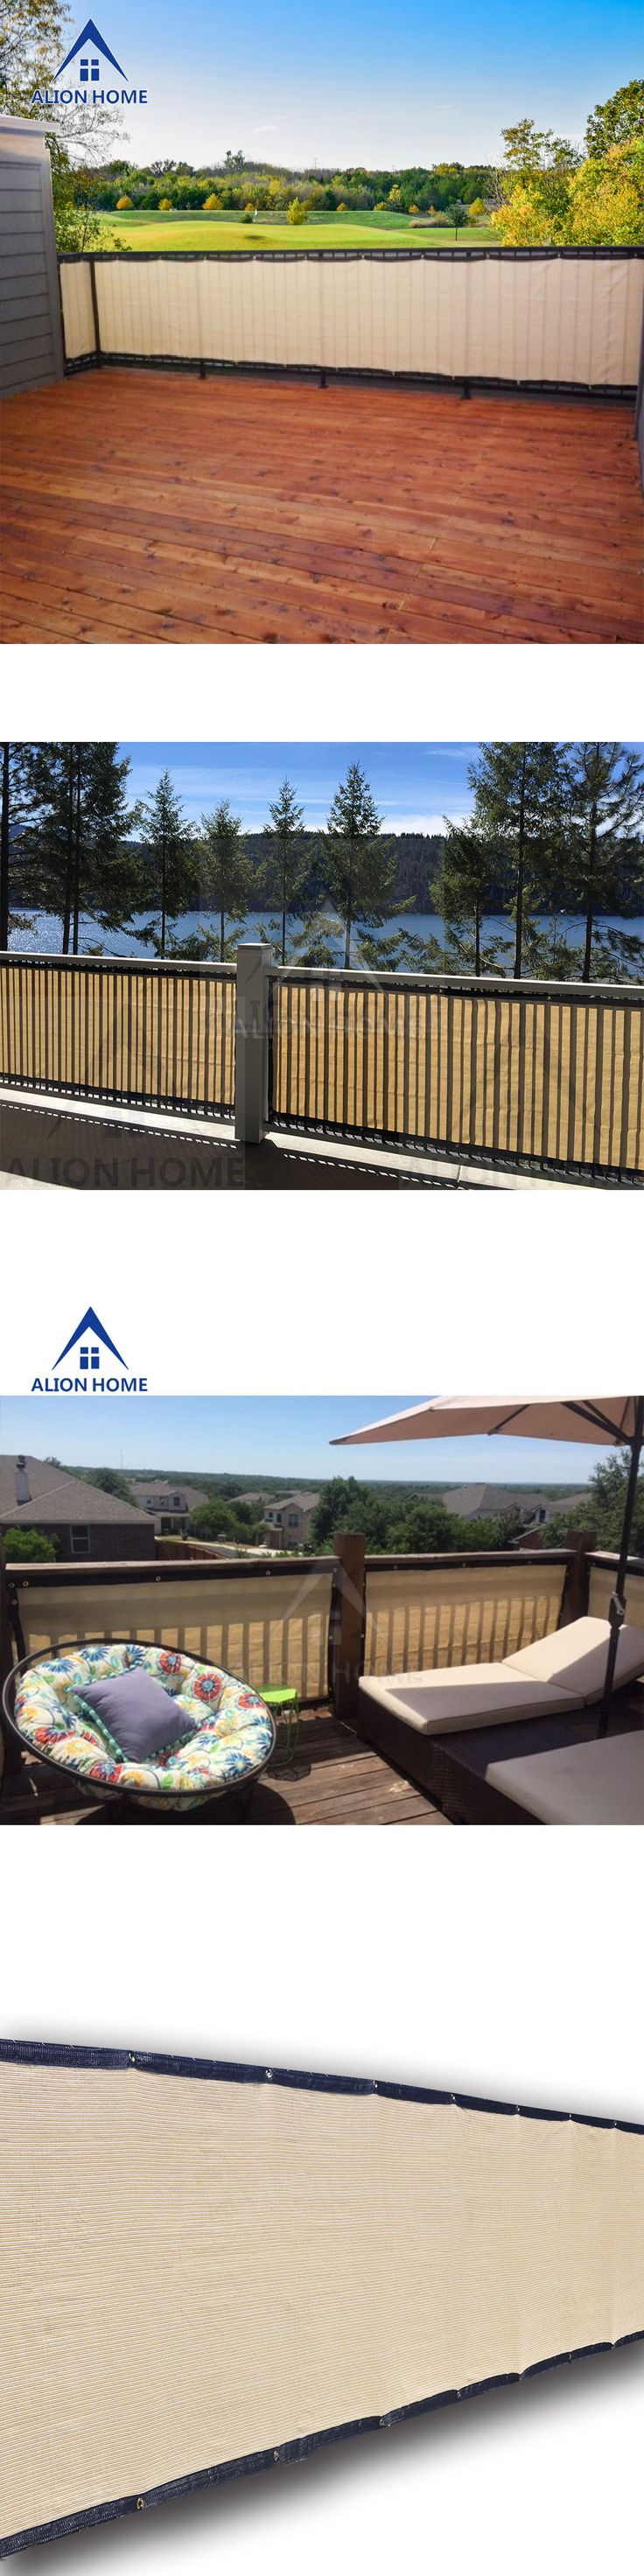 Privacy screen for chain link fence ebay - Privacy Screens Windscreens 180991 Alion Home Custom Sized Privacy Screen Patio Fence